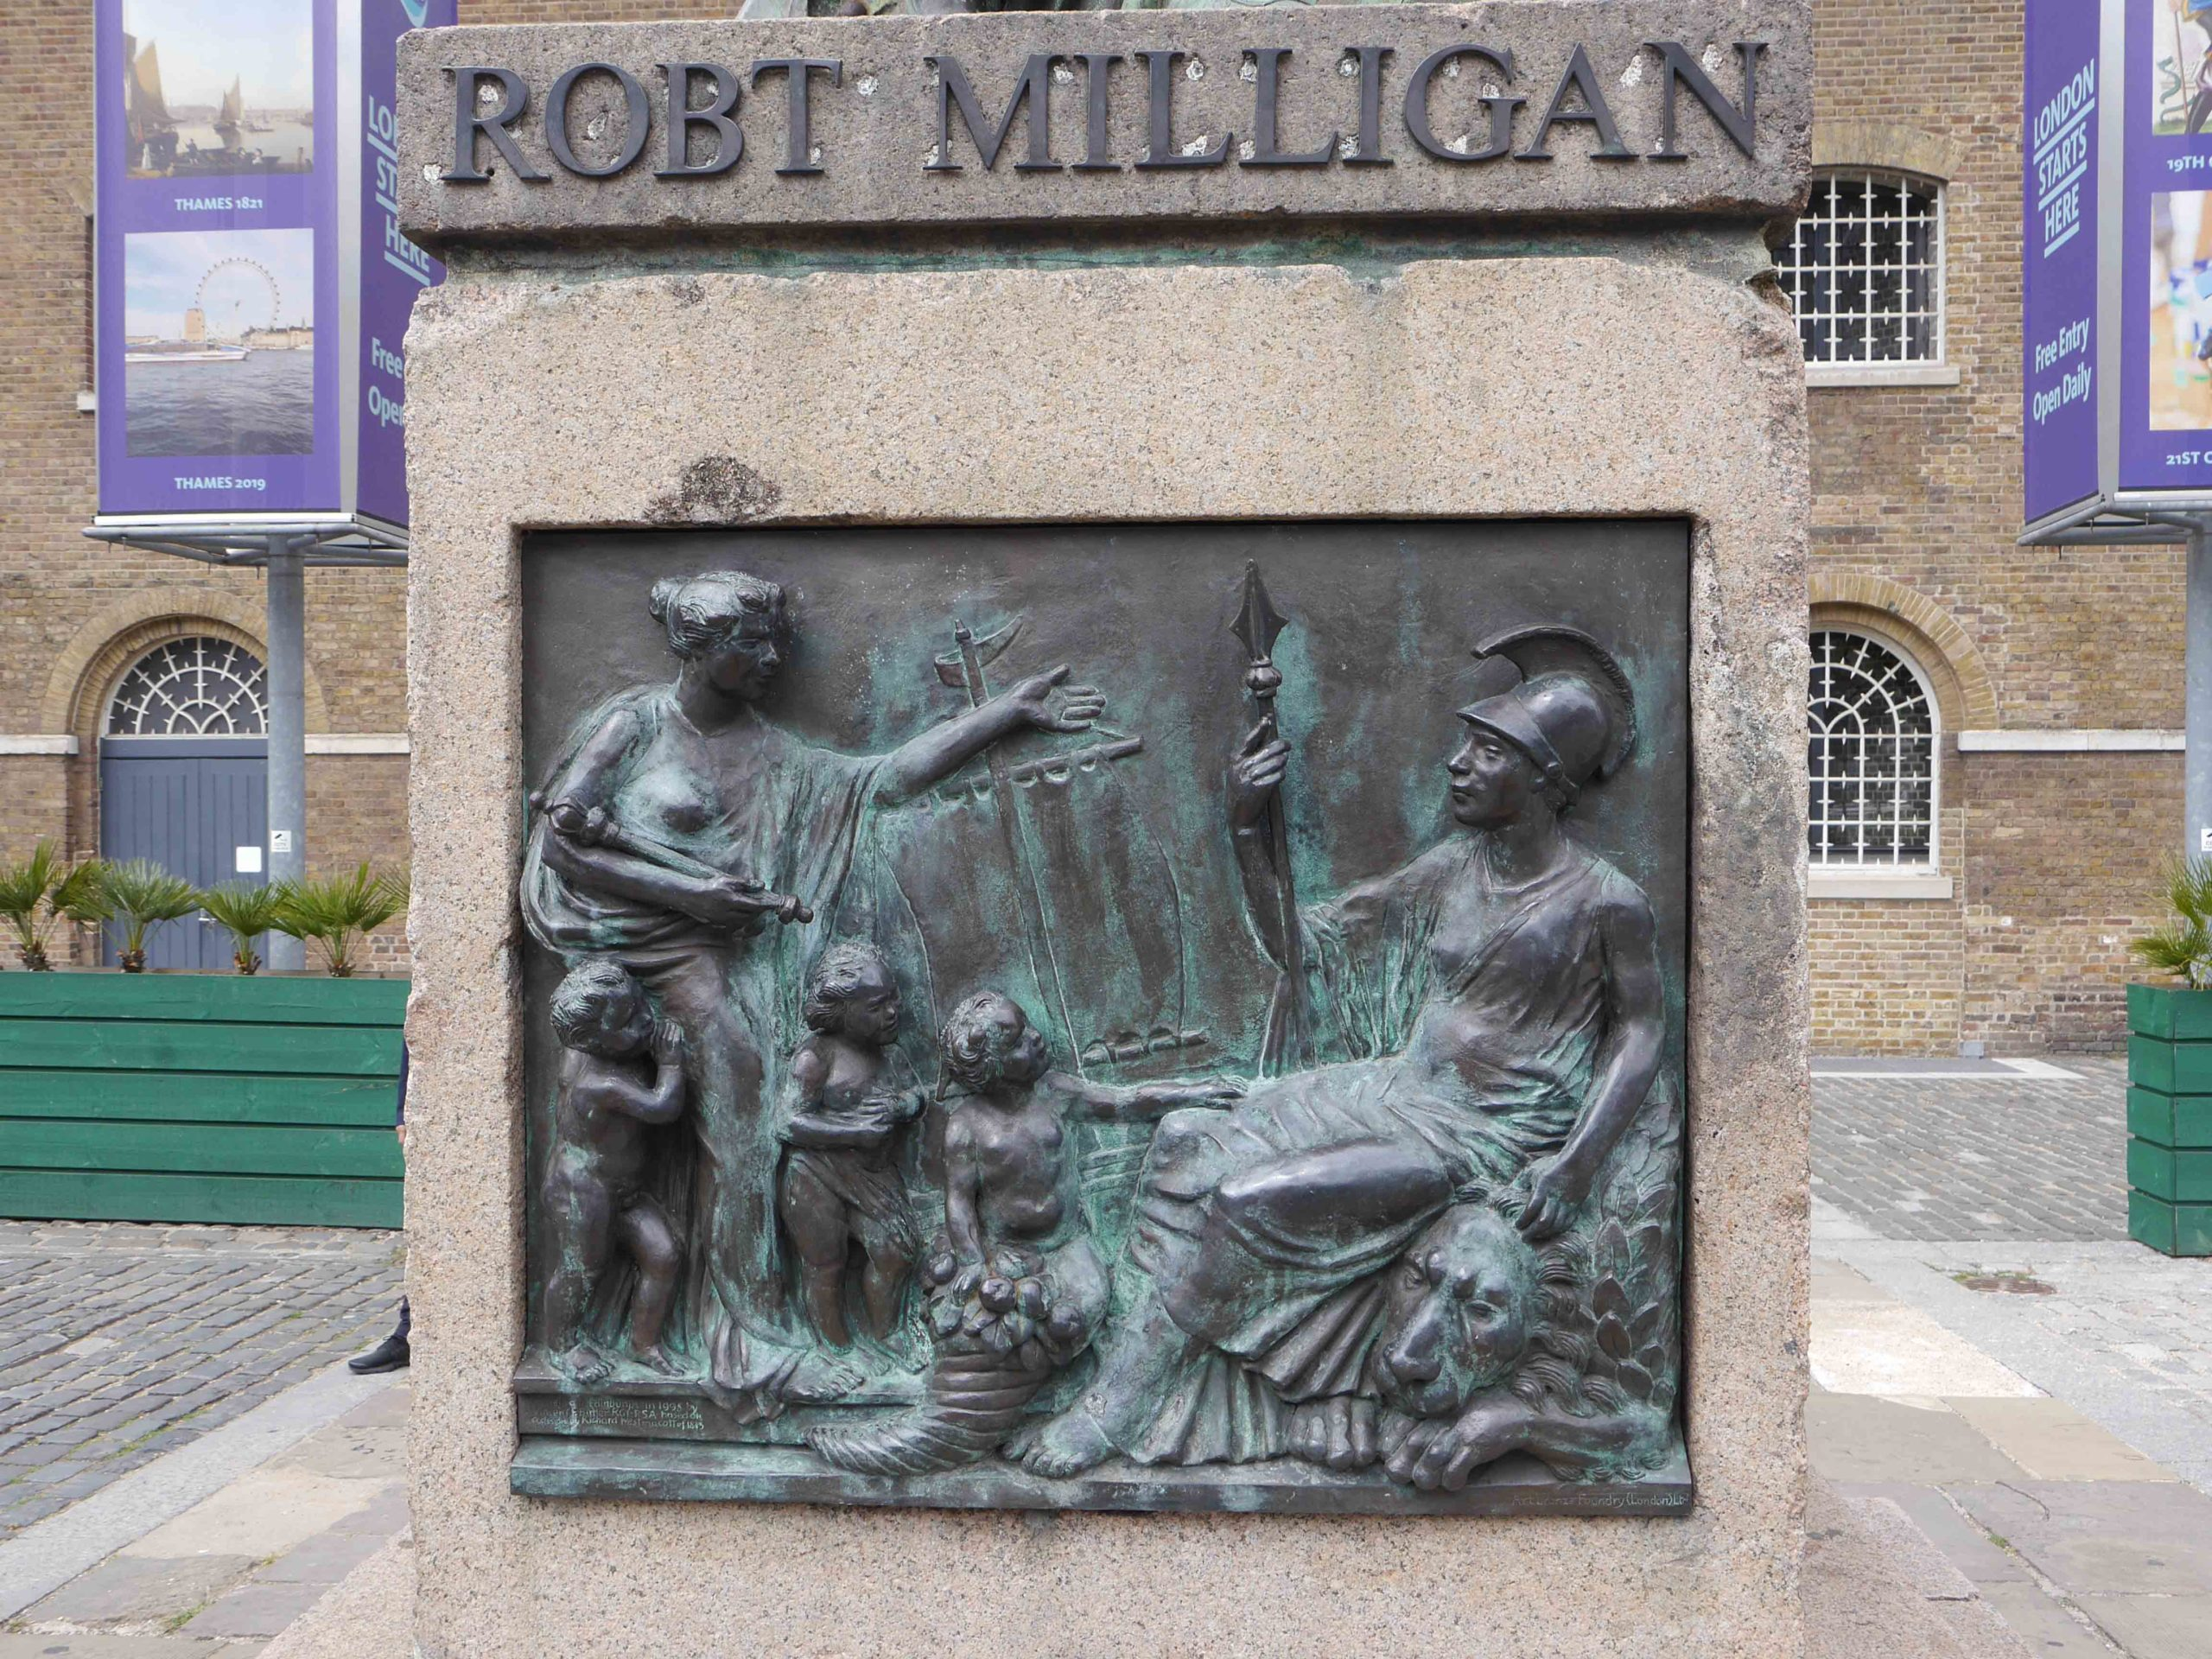 The engraving below Robert Milligan's statue